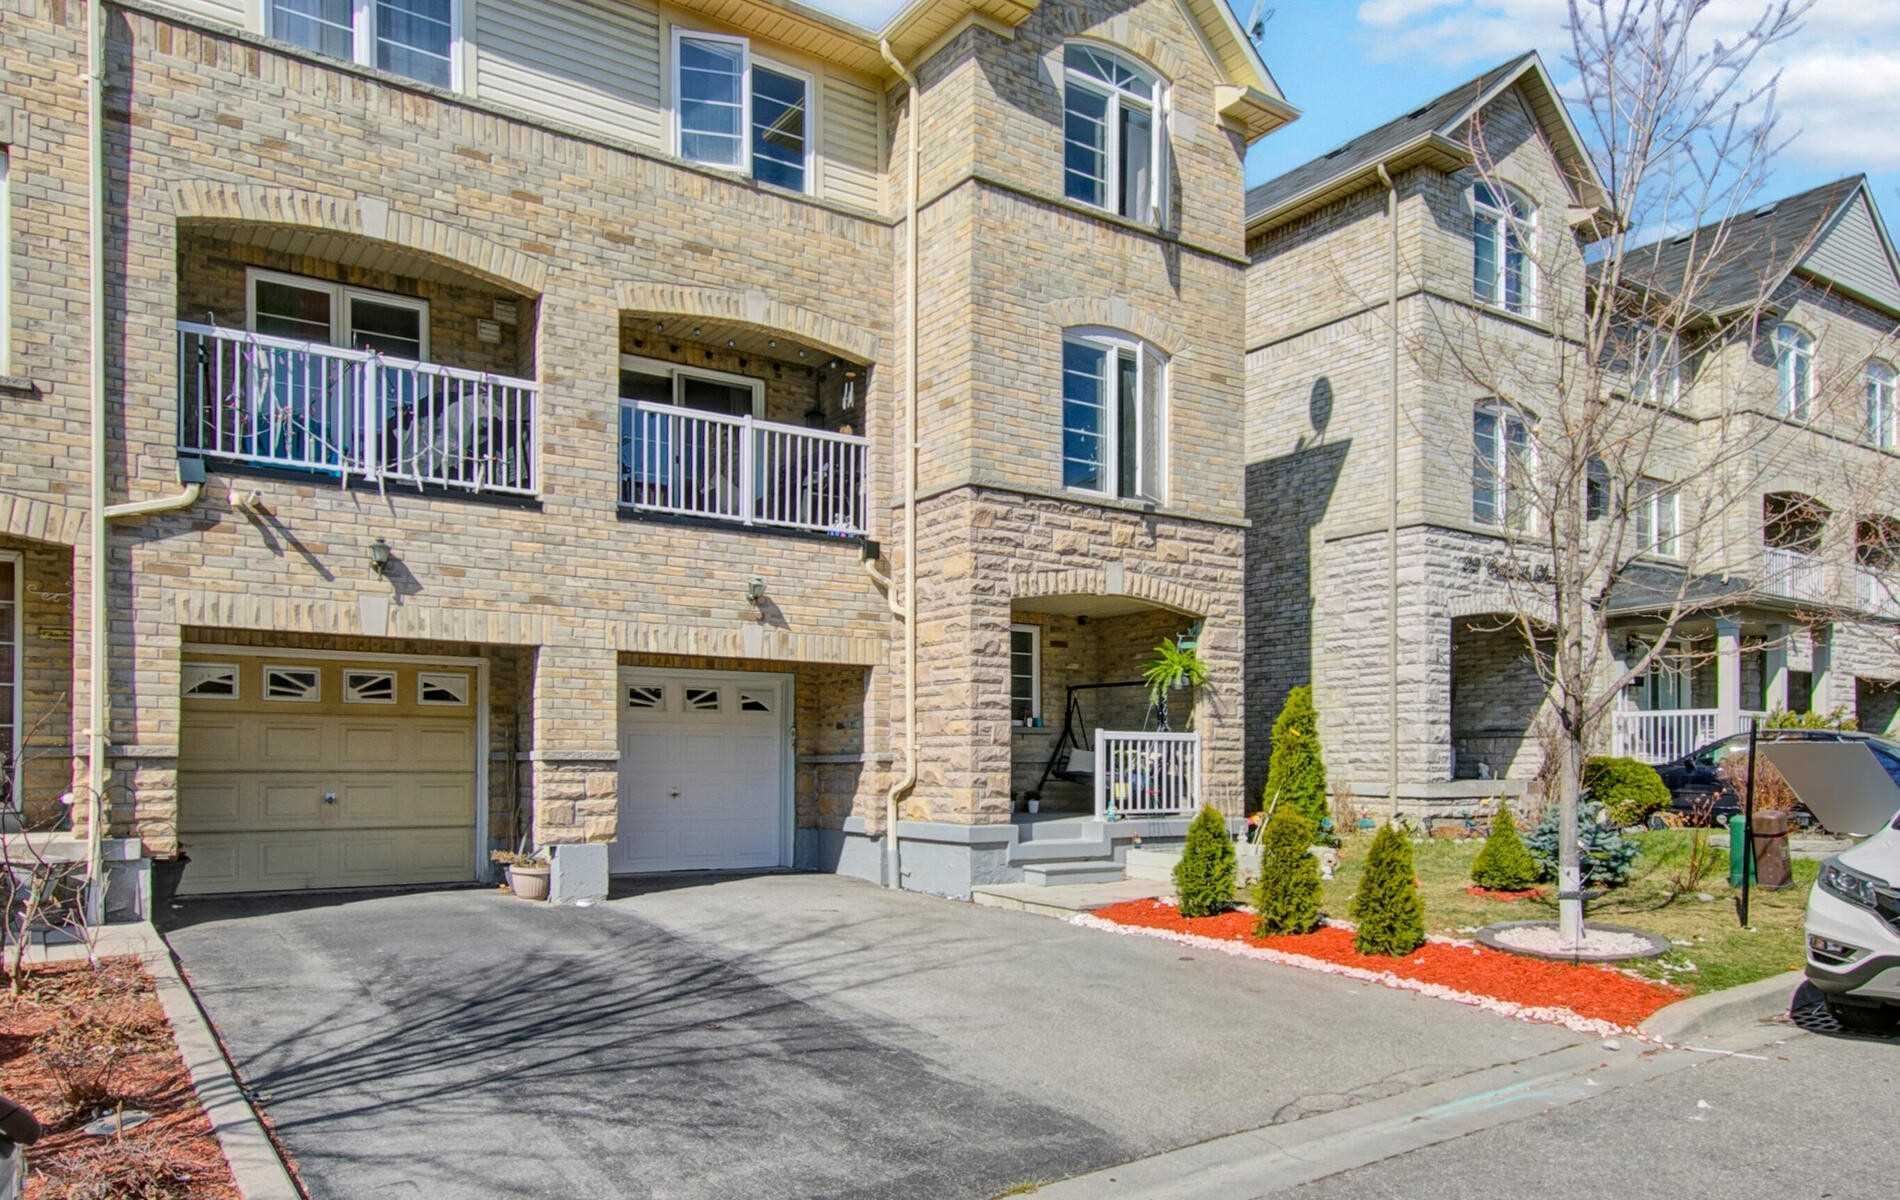 24 Cullcastle St, Ajax, ON L1S0A8 - MLS#: E5187563